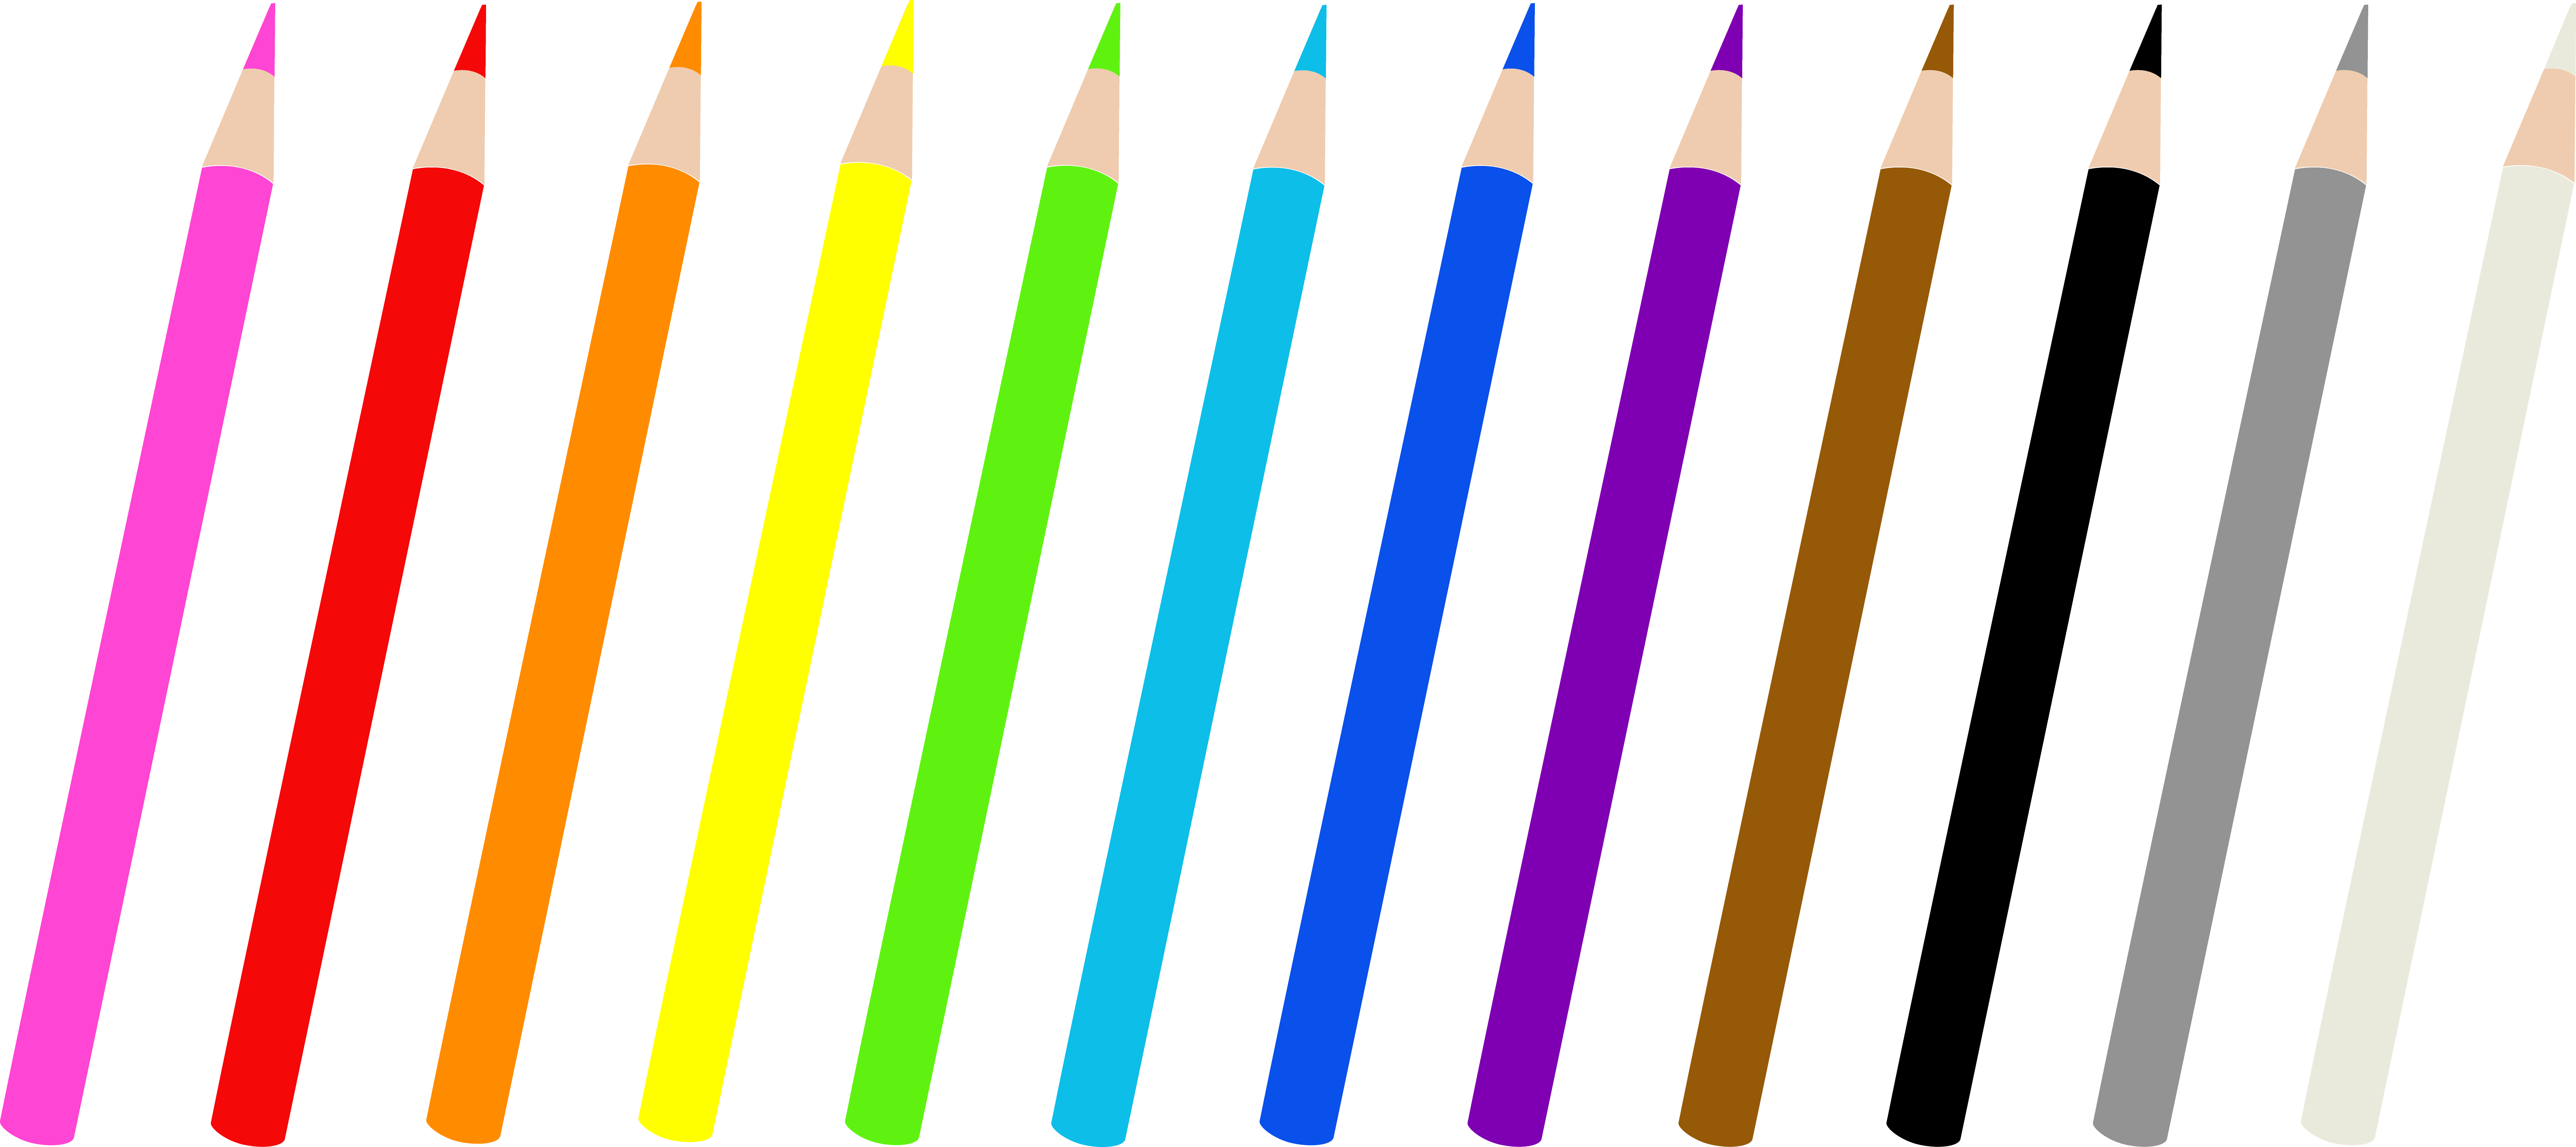 Free clipart colors image transparent library Free Colored Pencils Clipart, Download Free Clip Art, Free Clip Art ... image transparent library